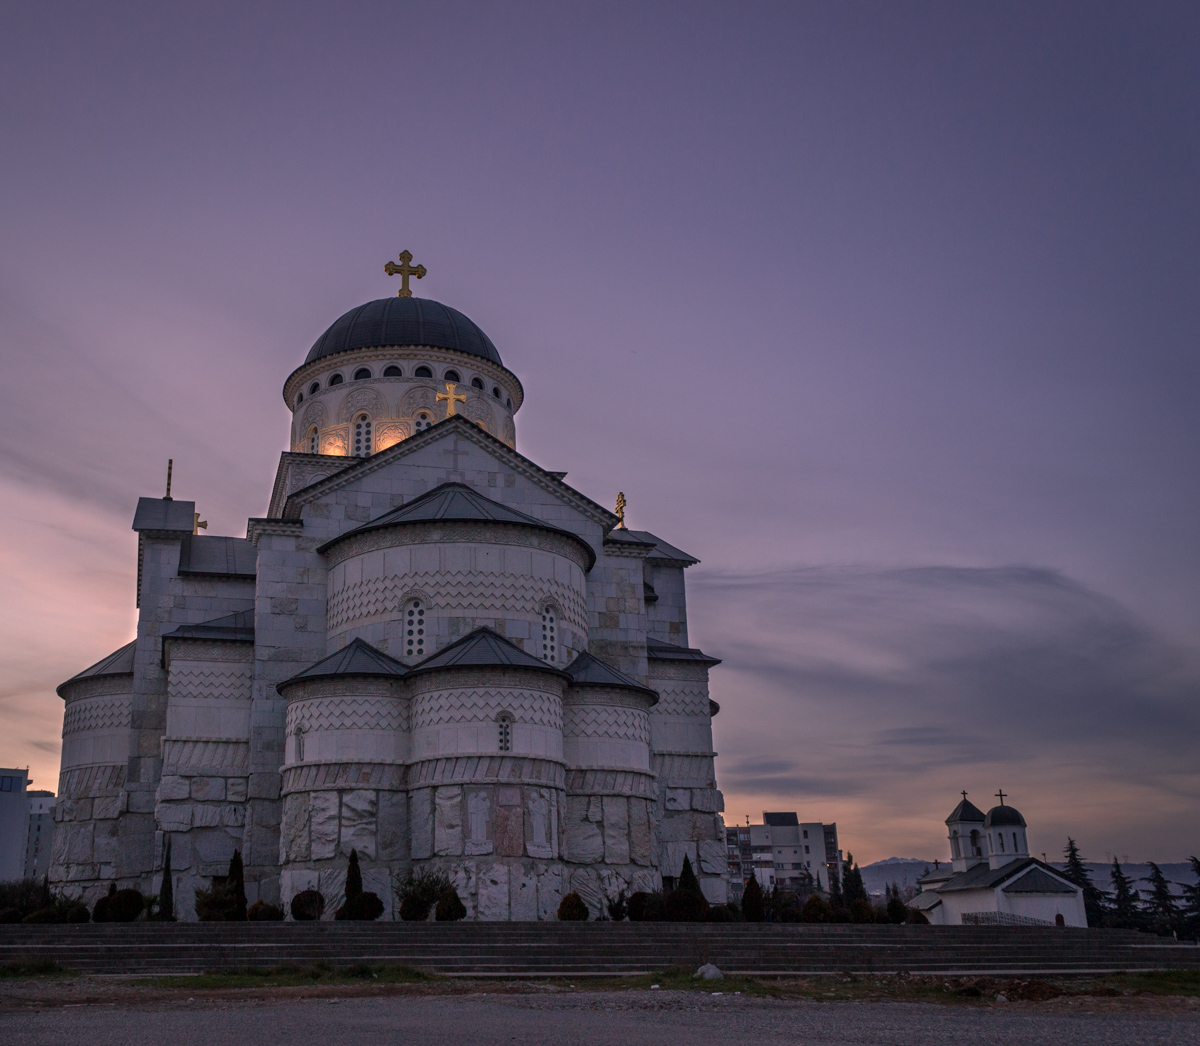 Largest Serbian Orthodox Hram or Cathedral in Montenegro